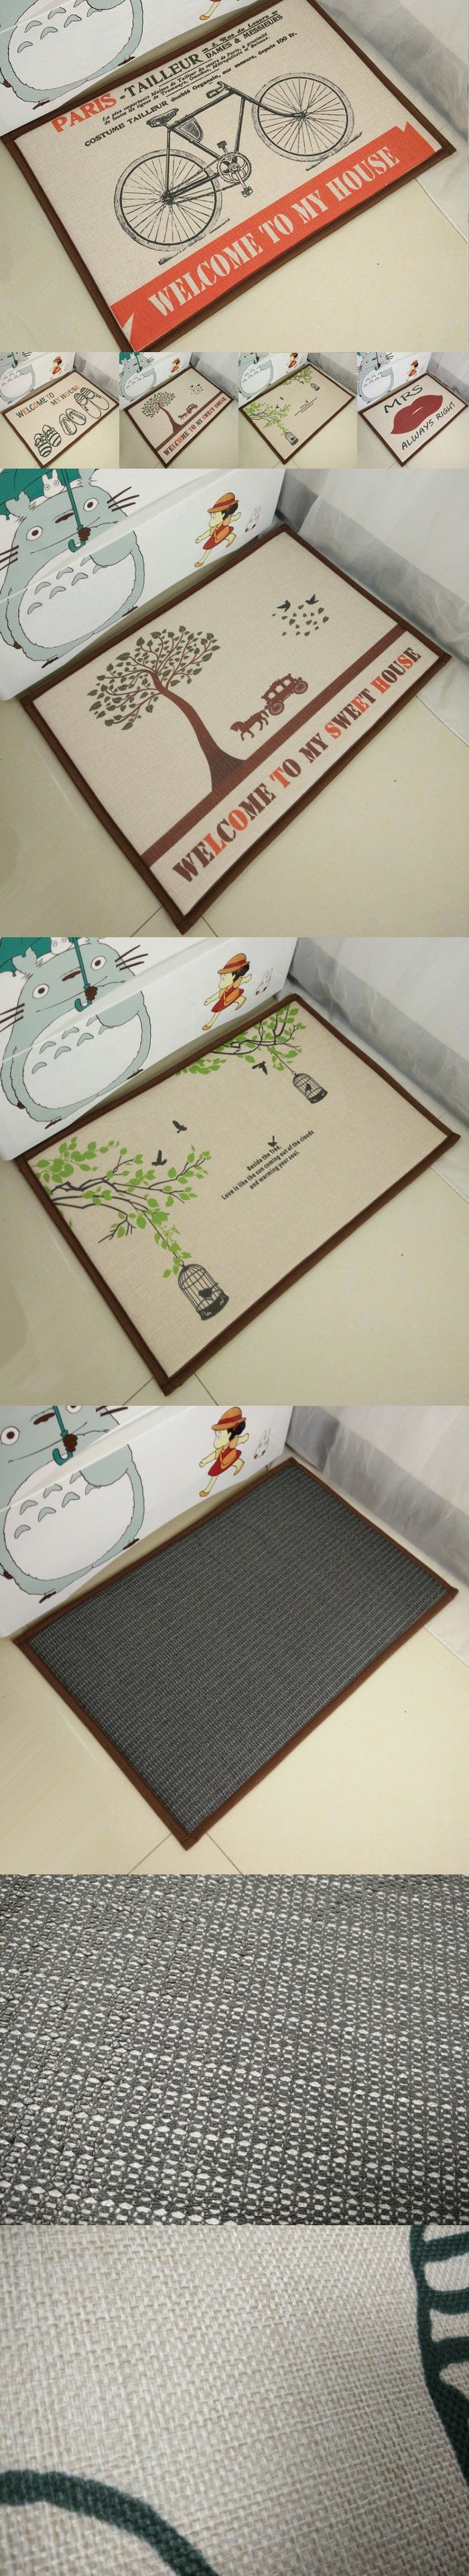 40*60cm Minimalist Pattern Door Mat for Room Washable Home Decoration Parlor Carpet Toilet Kitchen Rugs $13.16